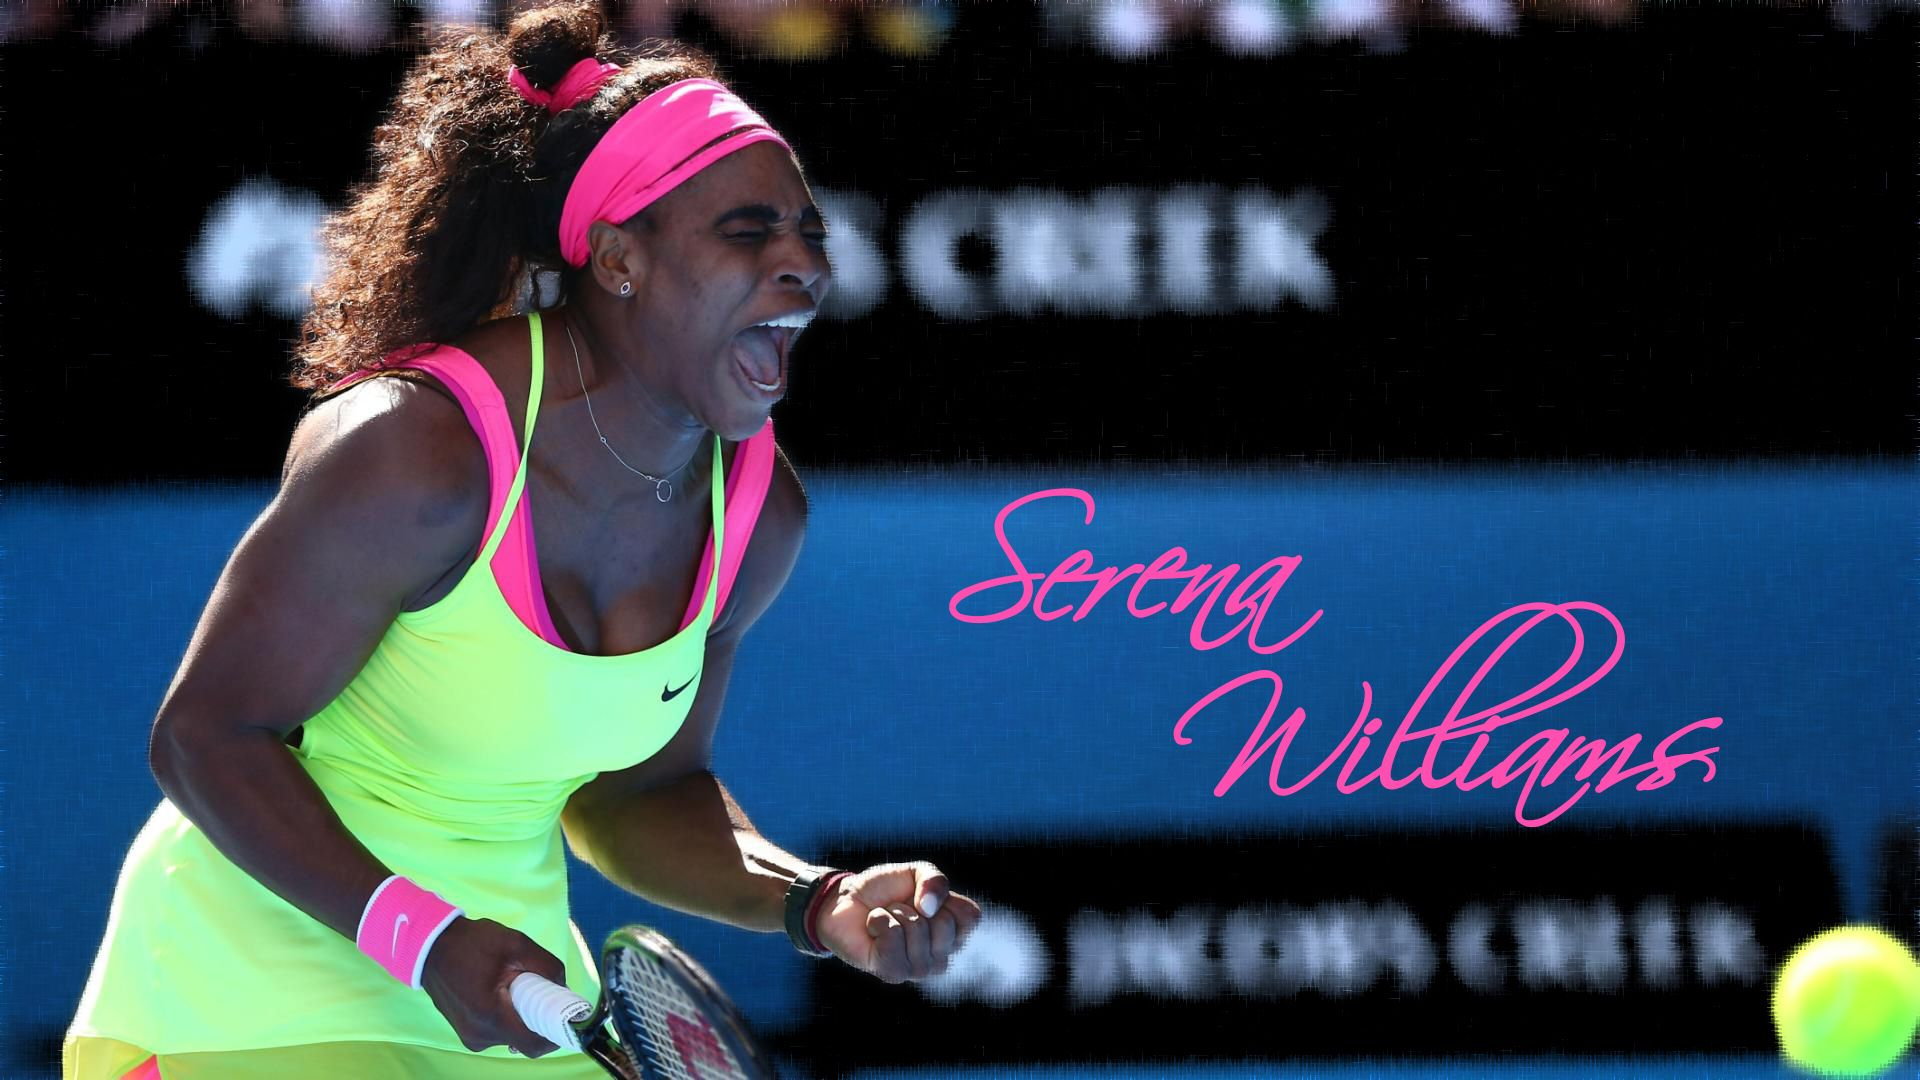 Serena Williams Wallpapers - HD Wallpapers Backgrounds of Your Choice